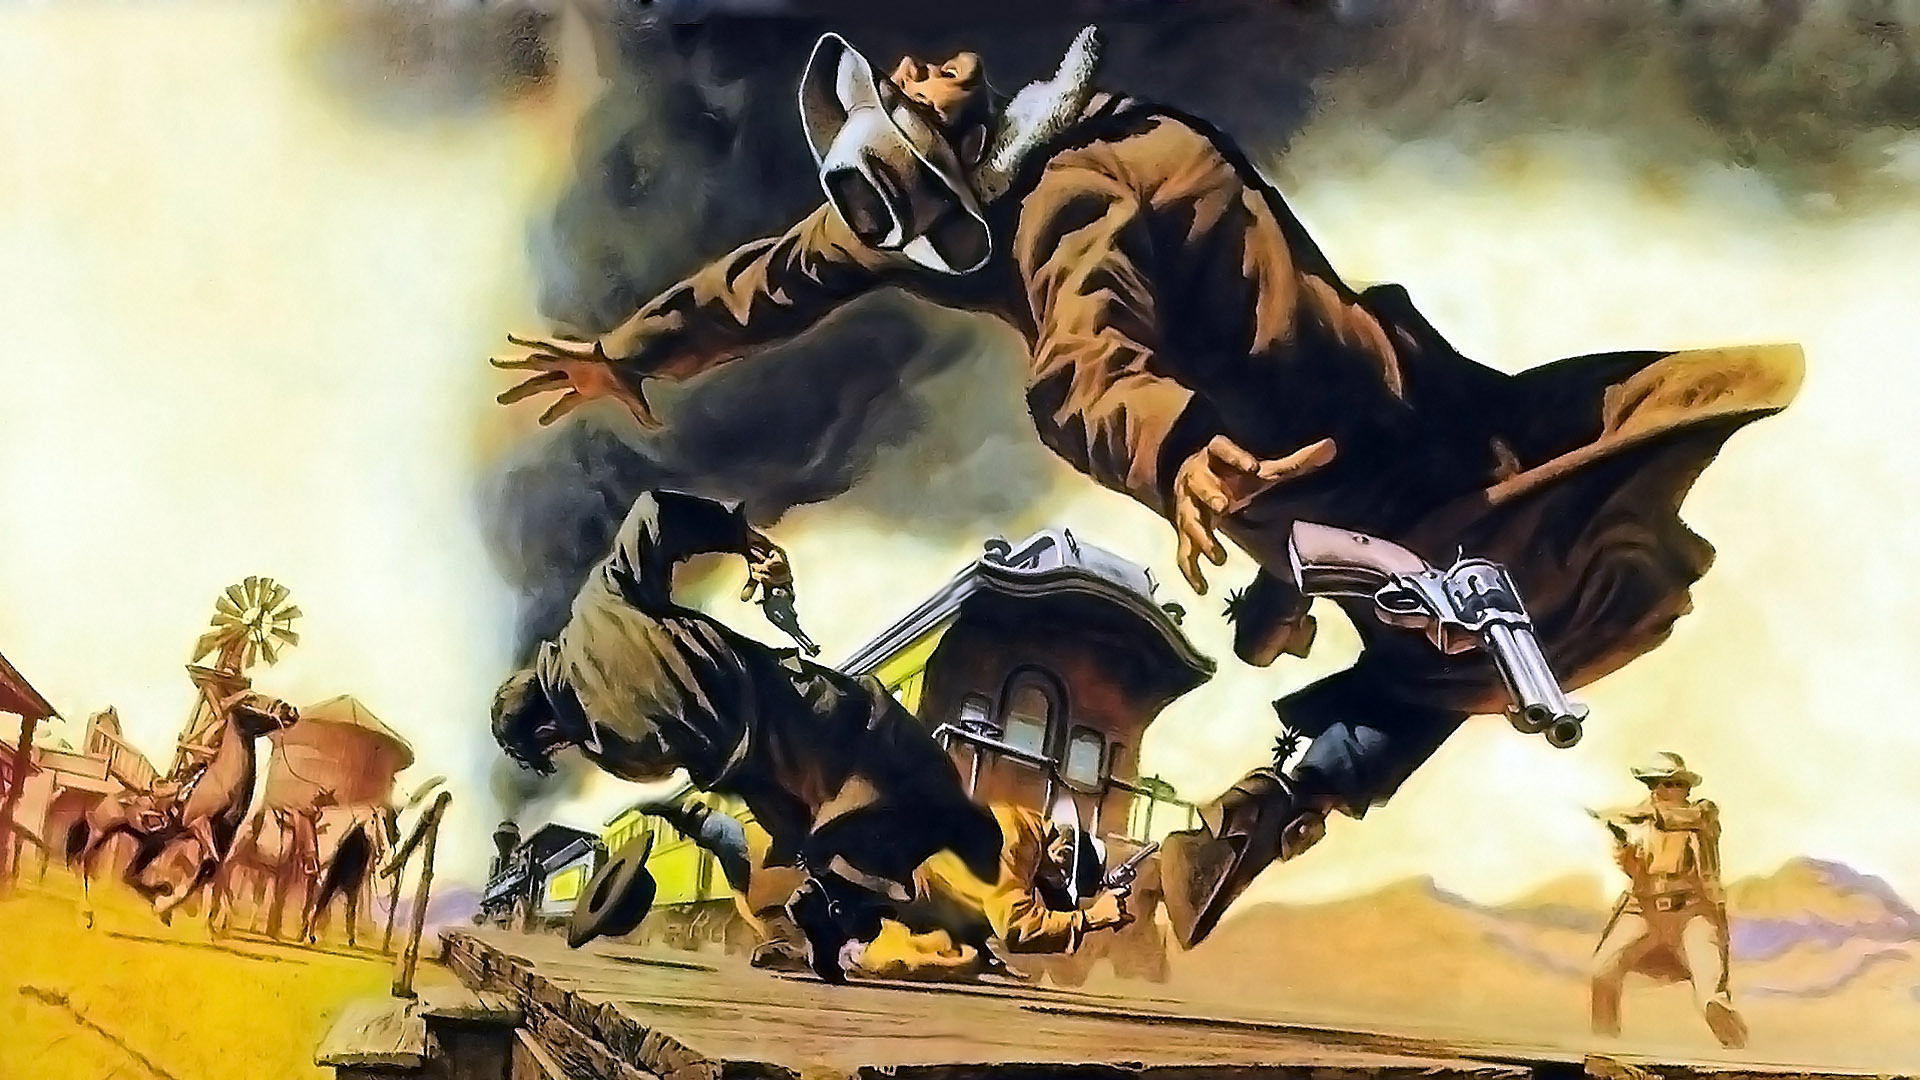 Cowboy Drawing Once Upon a Time in the West wallpaper background